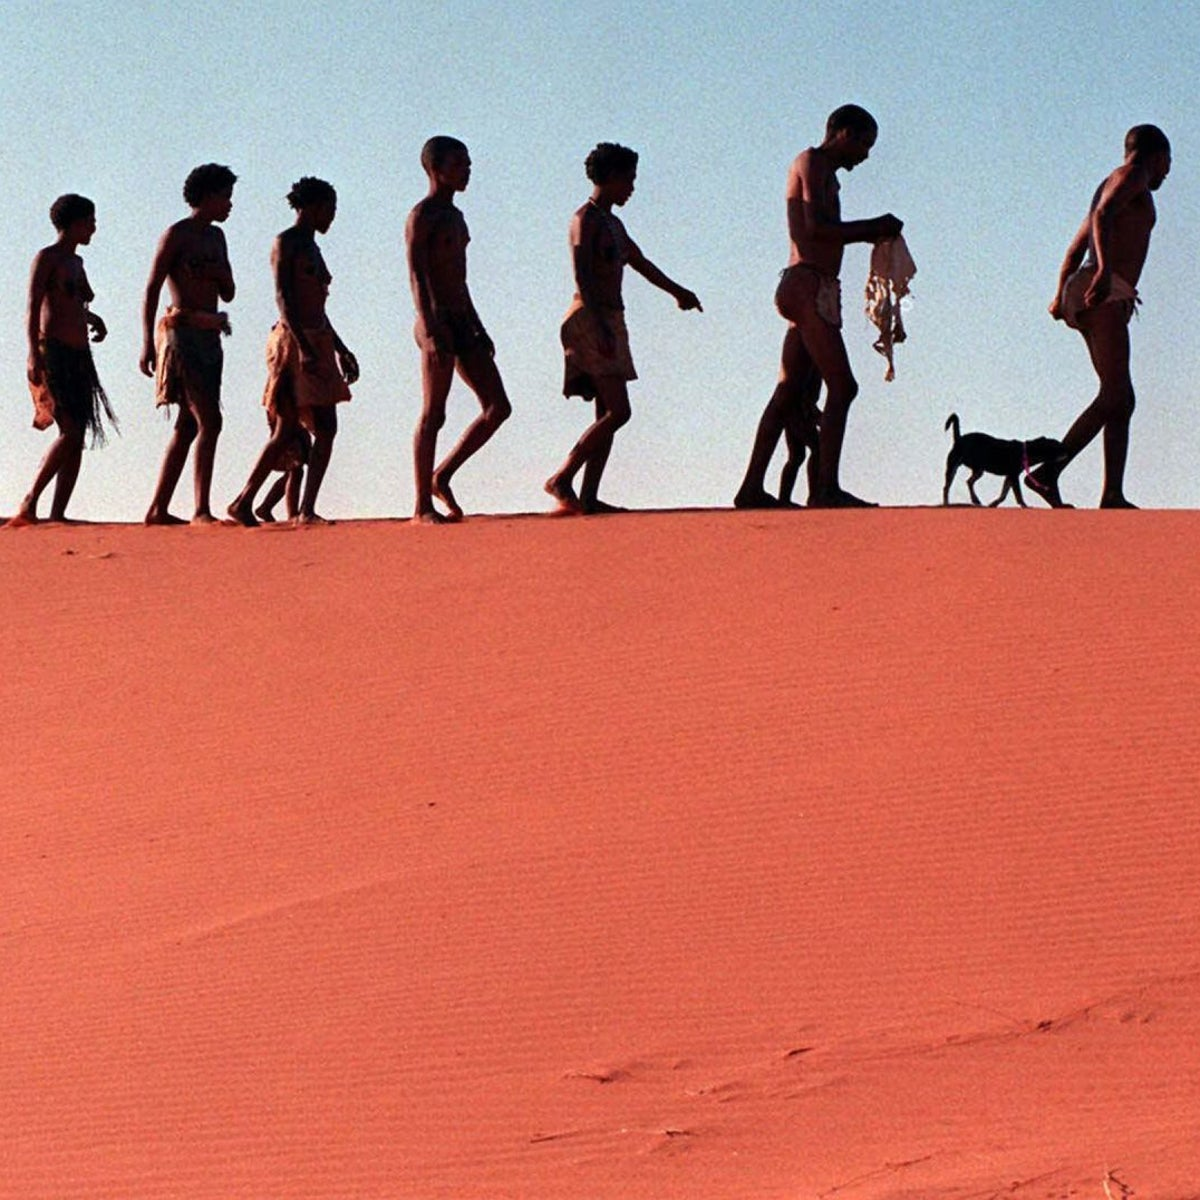 FILE -- In this Jan. 23, 1999 file photo, San people walk on the dunes in the Khomani cultural landscape to visit an ancestral burial site. Africa has several new sites on the United Nations world heritage list, including the Eritrean capital of Asmara, an old royal capital in Angola and a desert area in South Africa that was inhabited during the Stone Age,